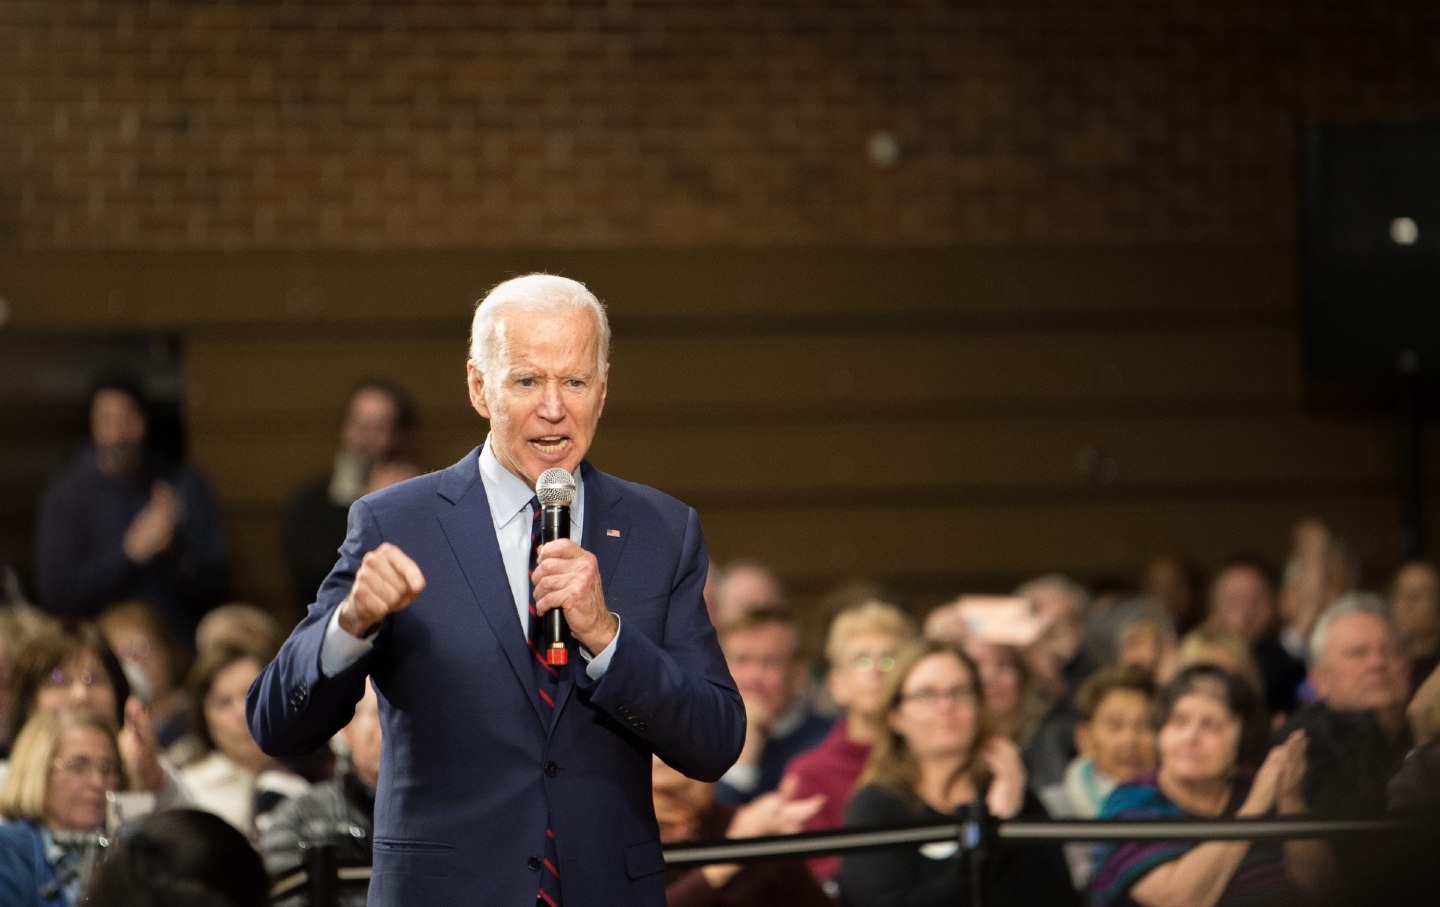 Biden Wants Tuition-Free Community College. What's Next?